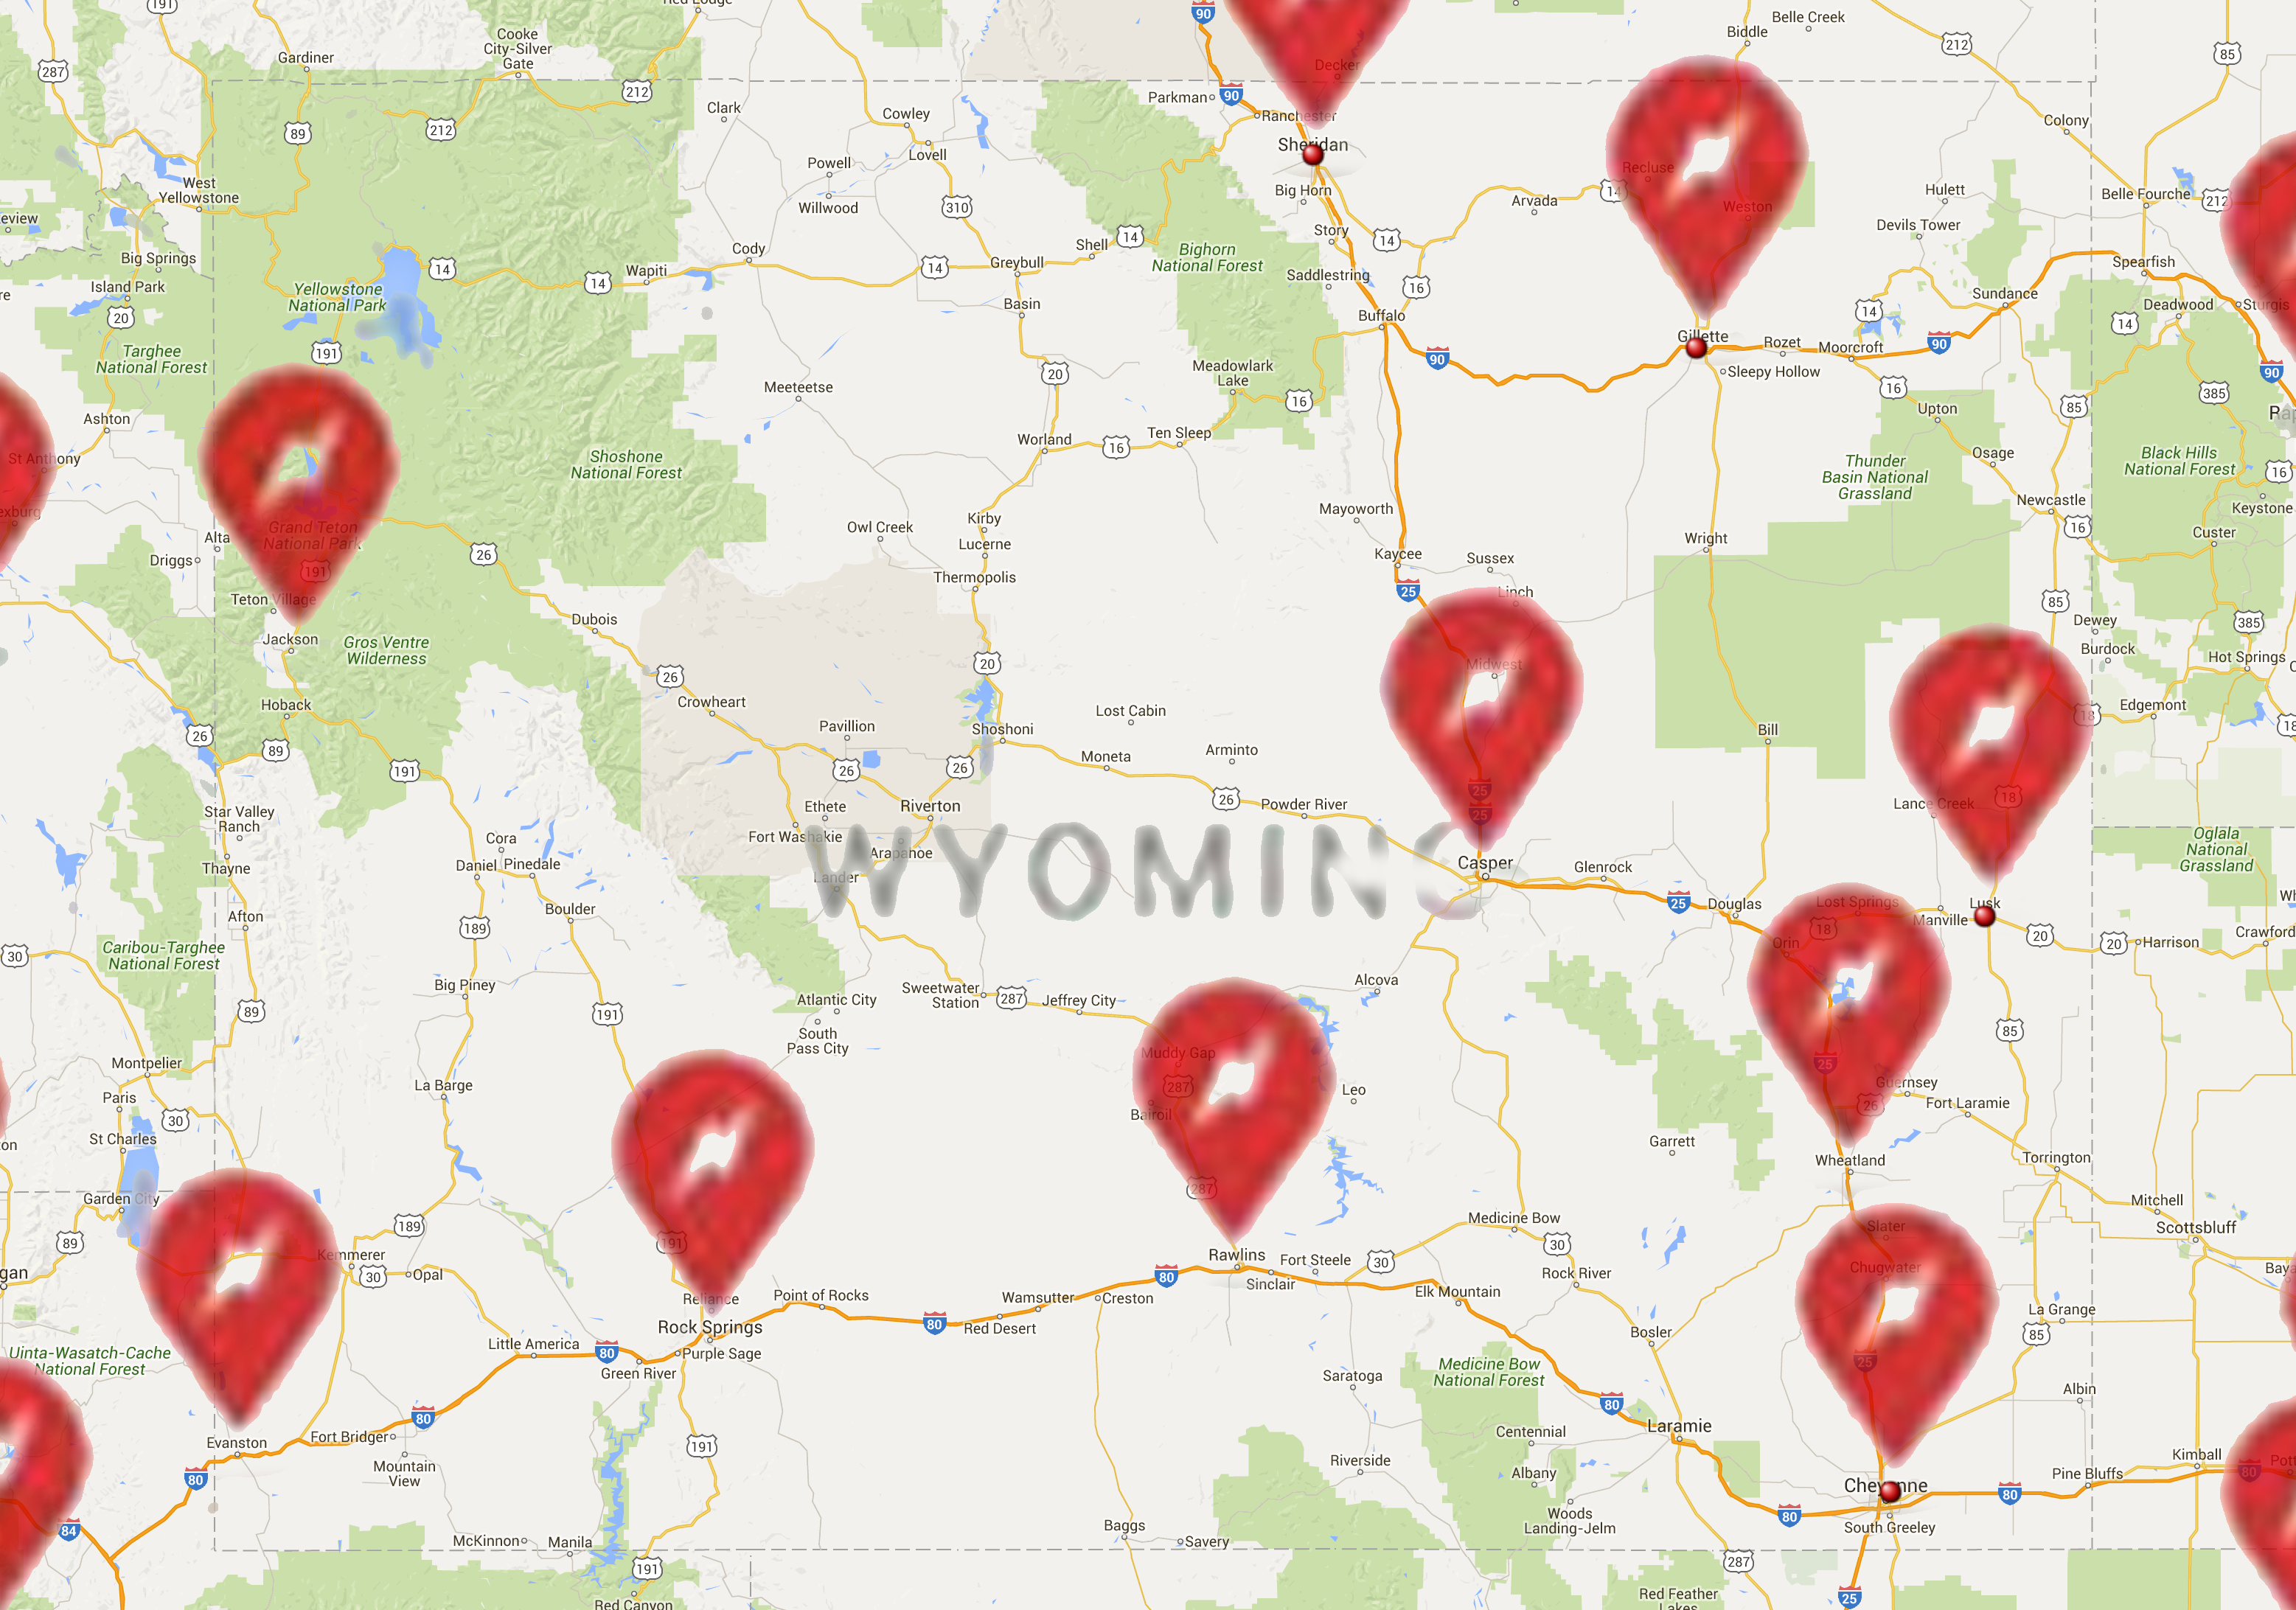 wyoming geting super 2016.png